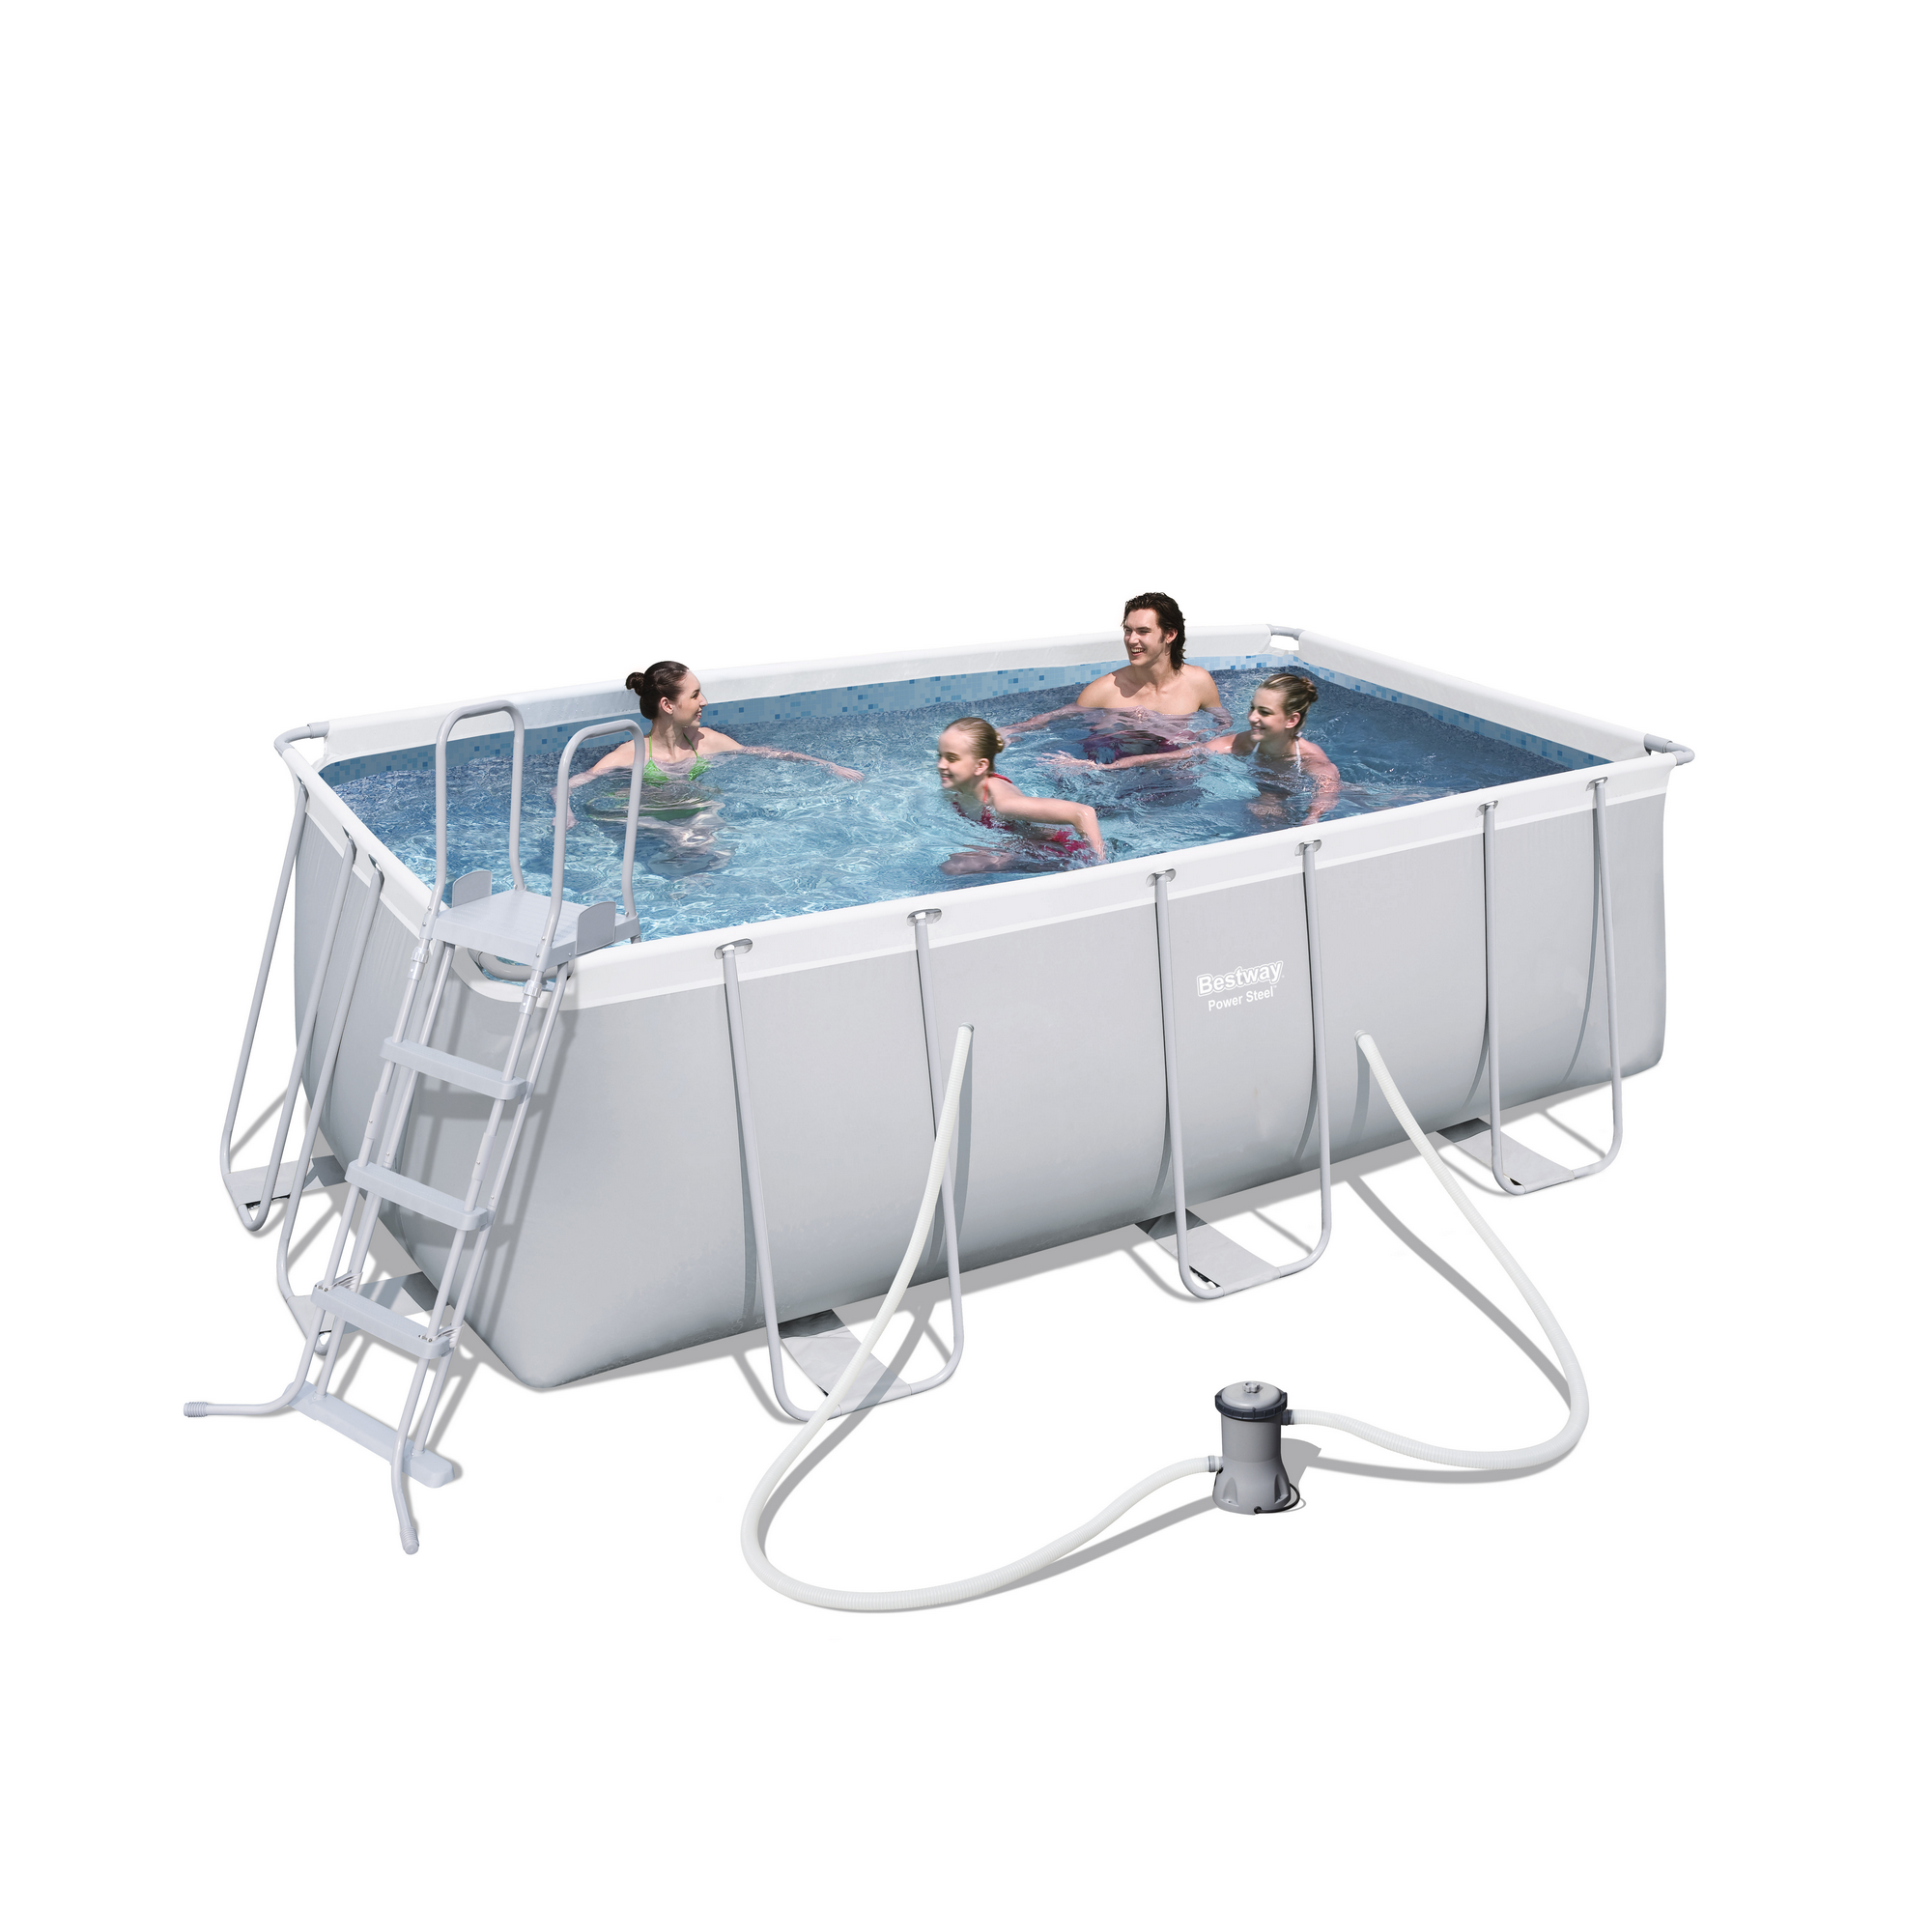 Power Steel Frame Pool  Set,412 X 201 X 122cm .